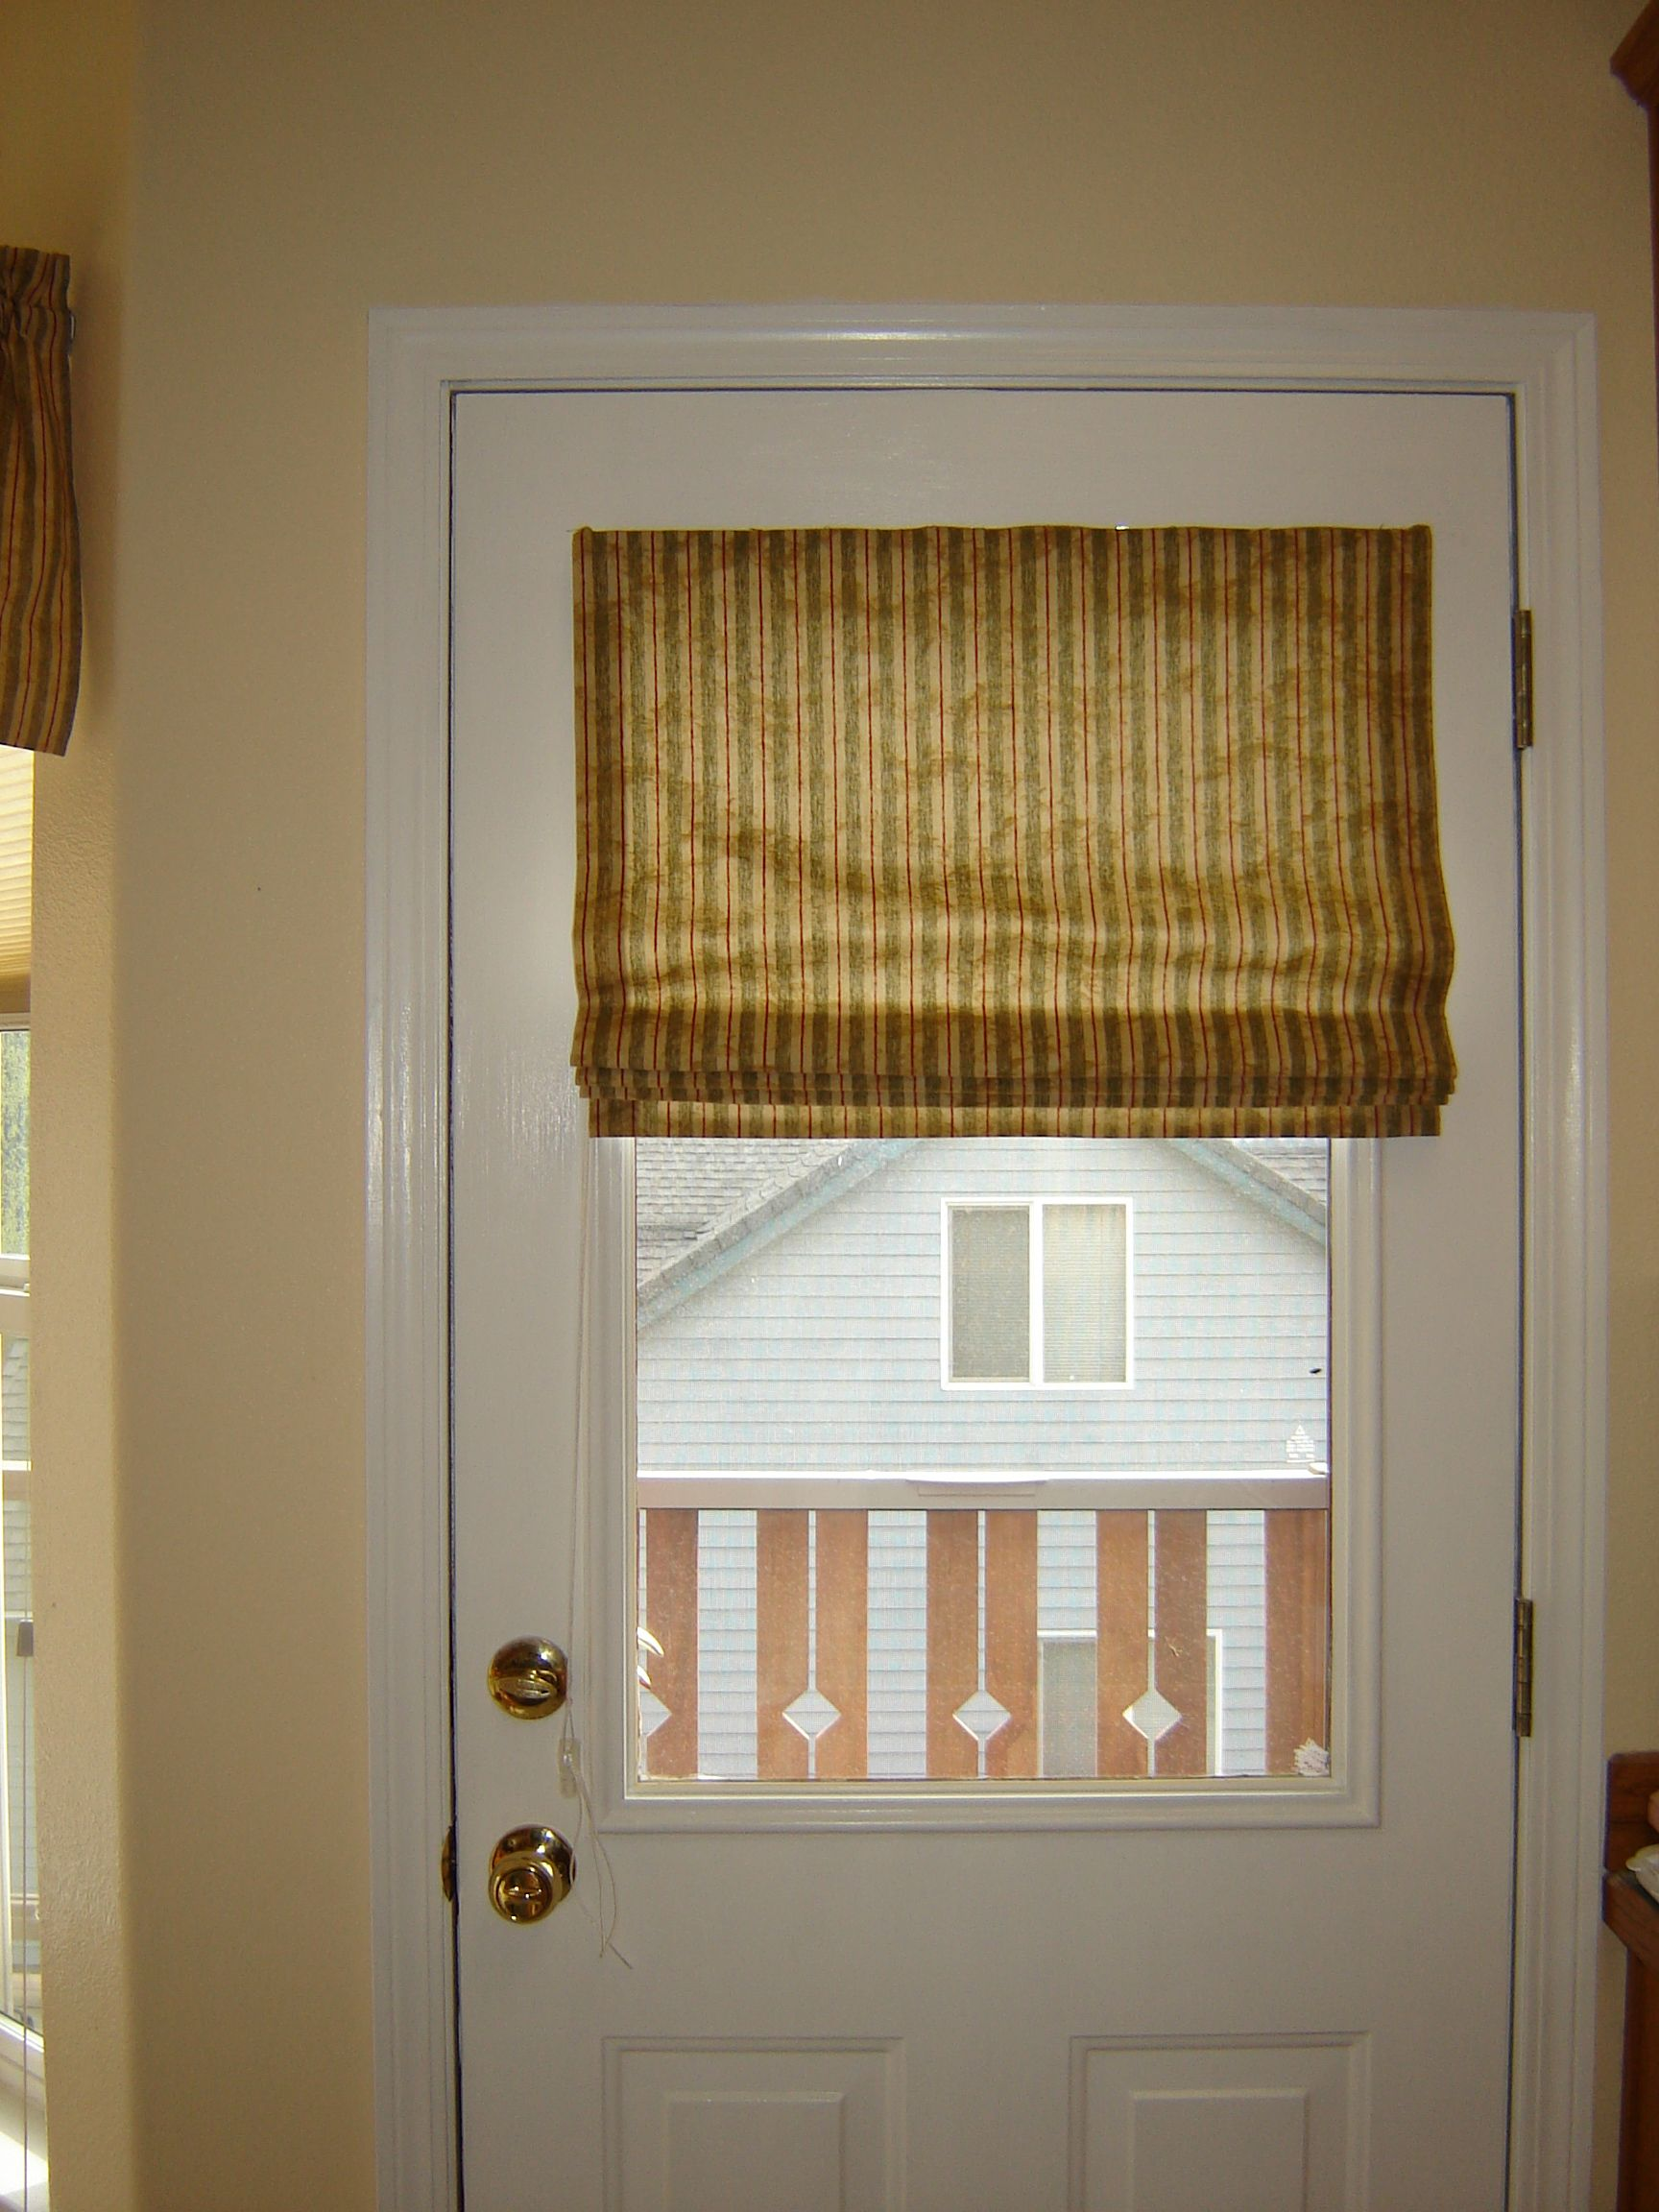 Roman Shade For Metal Door Glued Magnets To The Back Of The Wooden Mounting Board No Holes Needed In The Doo Windows And Doors Steel Doors Window Coverings